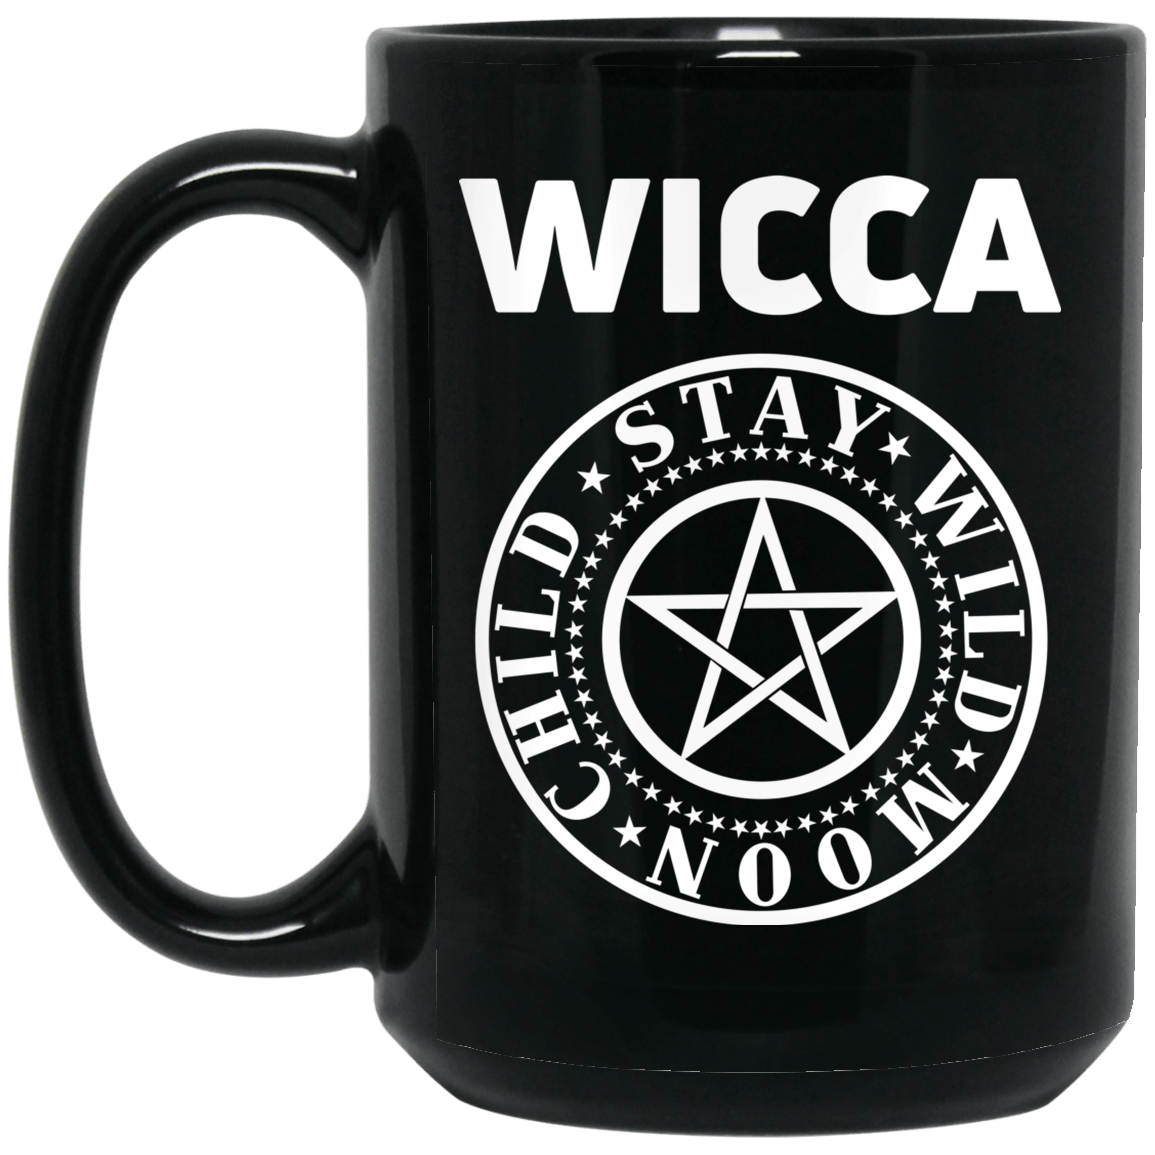 Wicca Child Stay Wild Moon Mug 1066-10182-88767857-49311 - Tee Ript